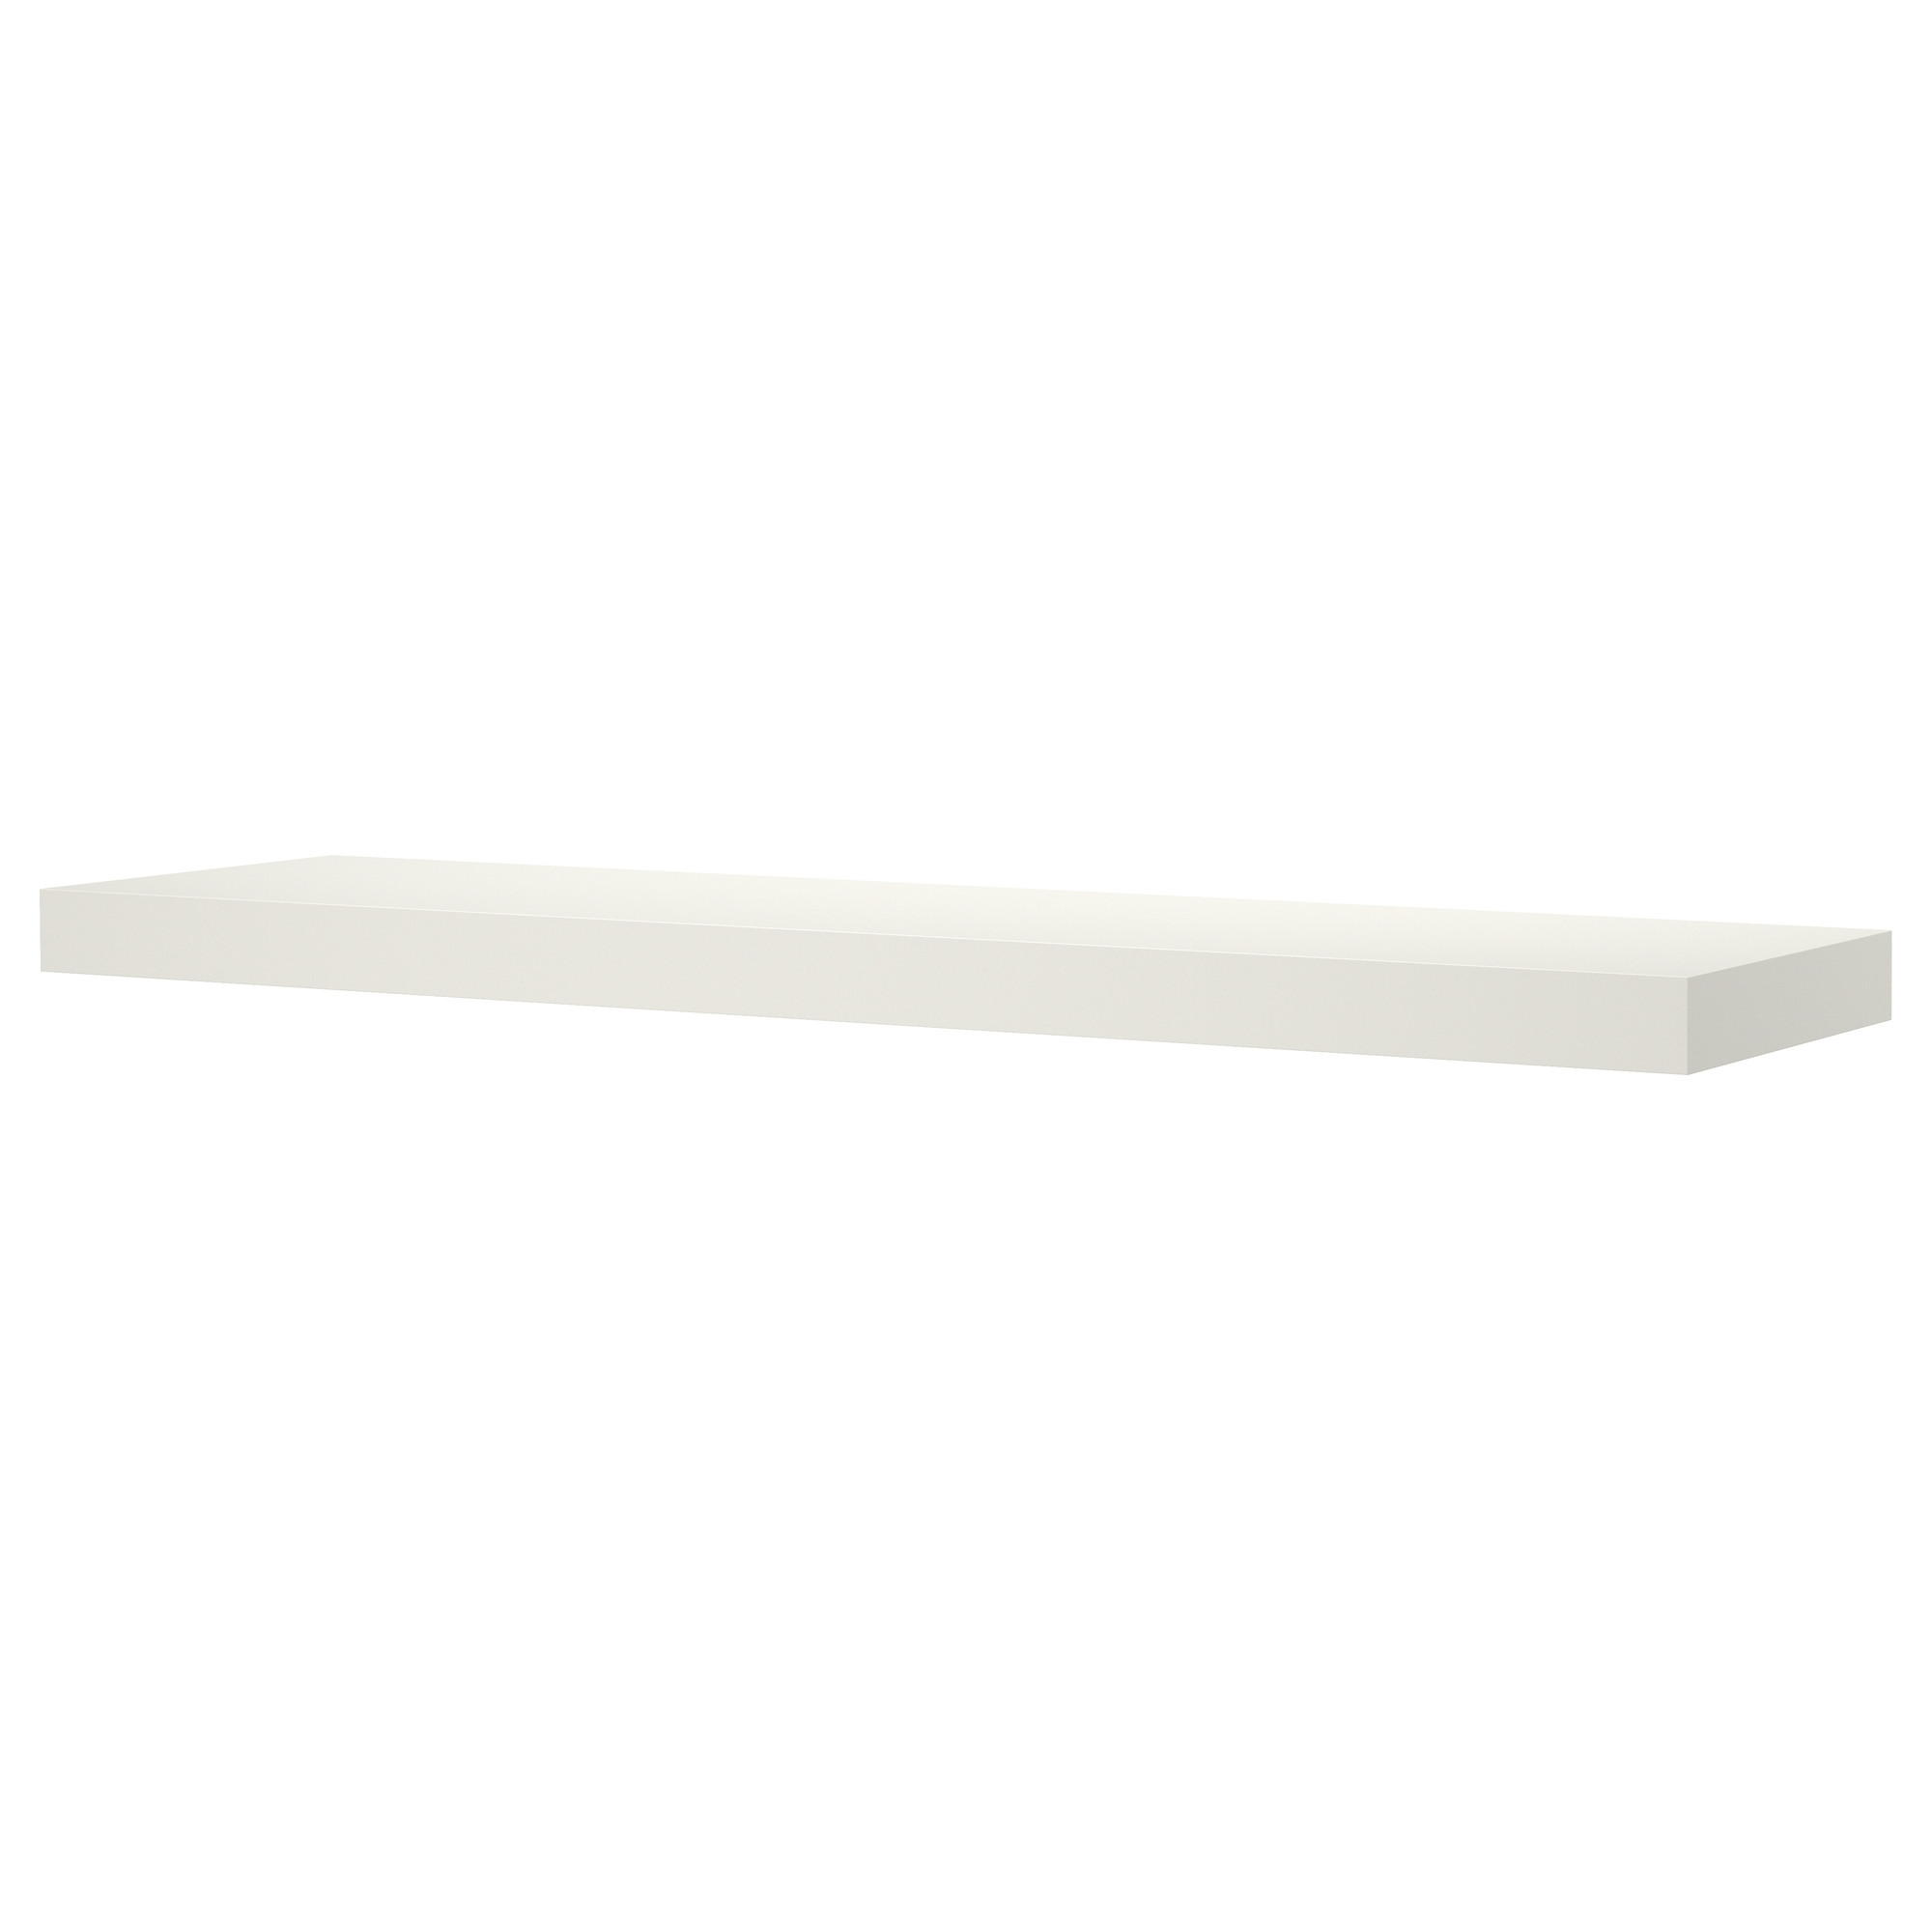 white shelf lack wall shelf - white - ikea NEAISBH